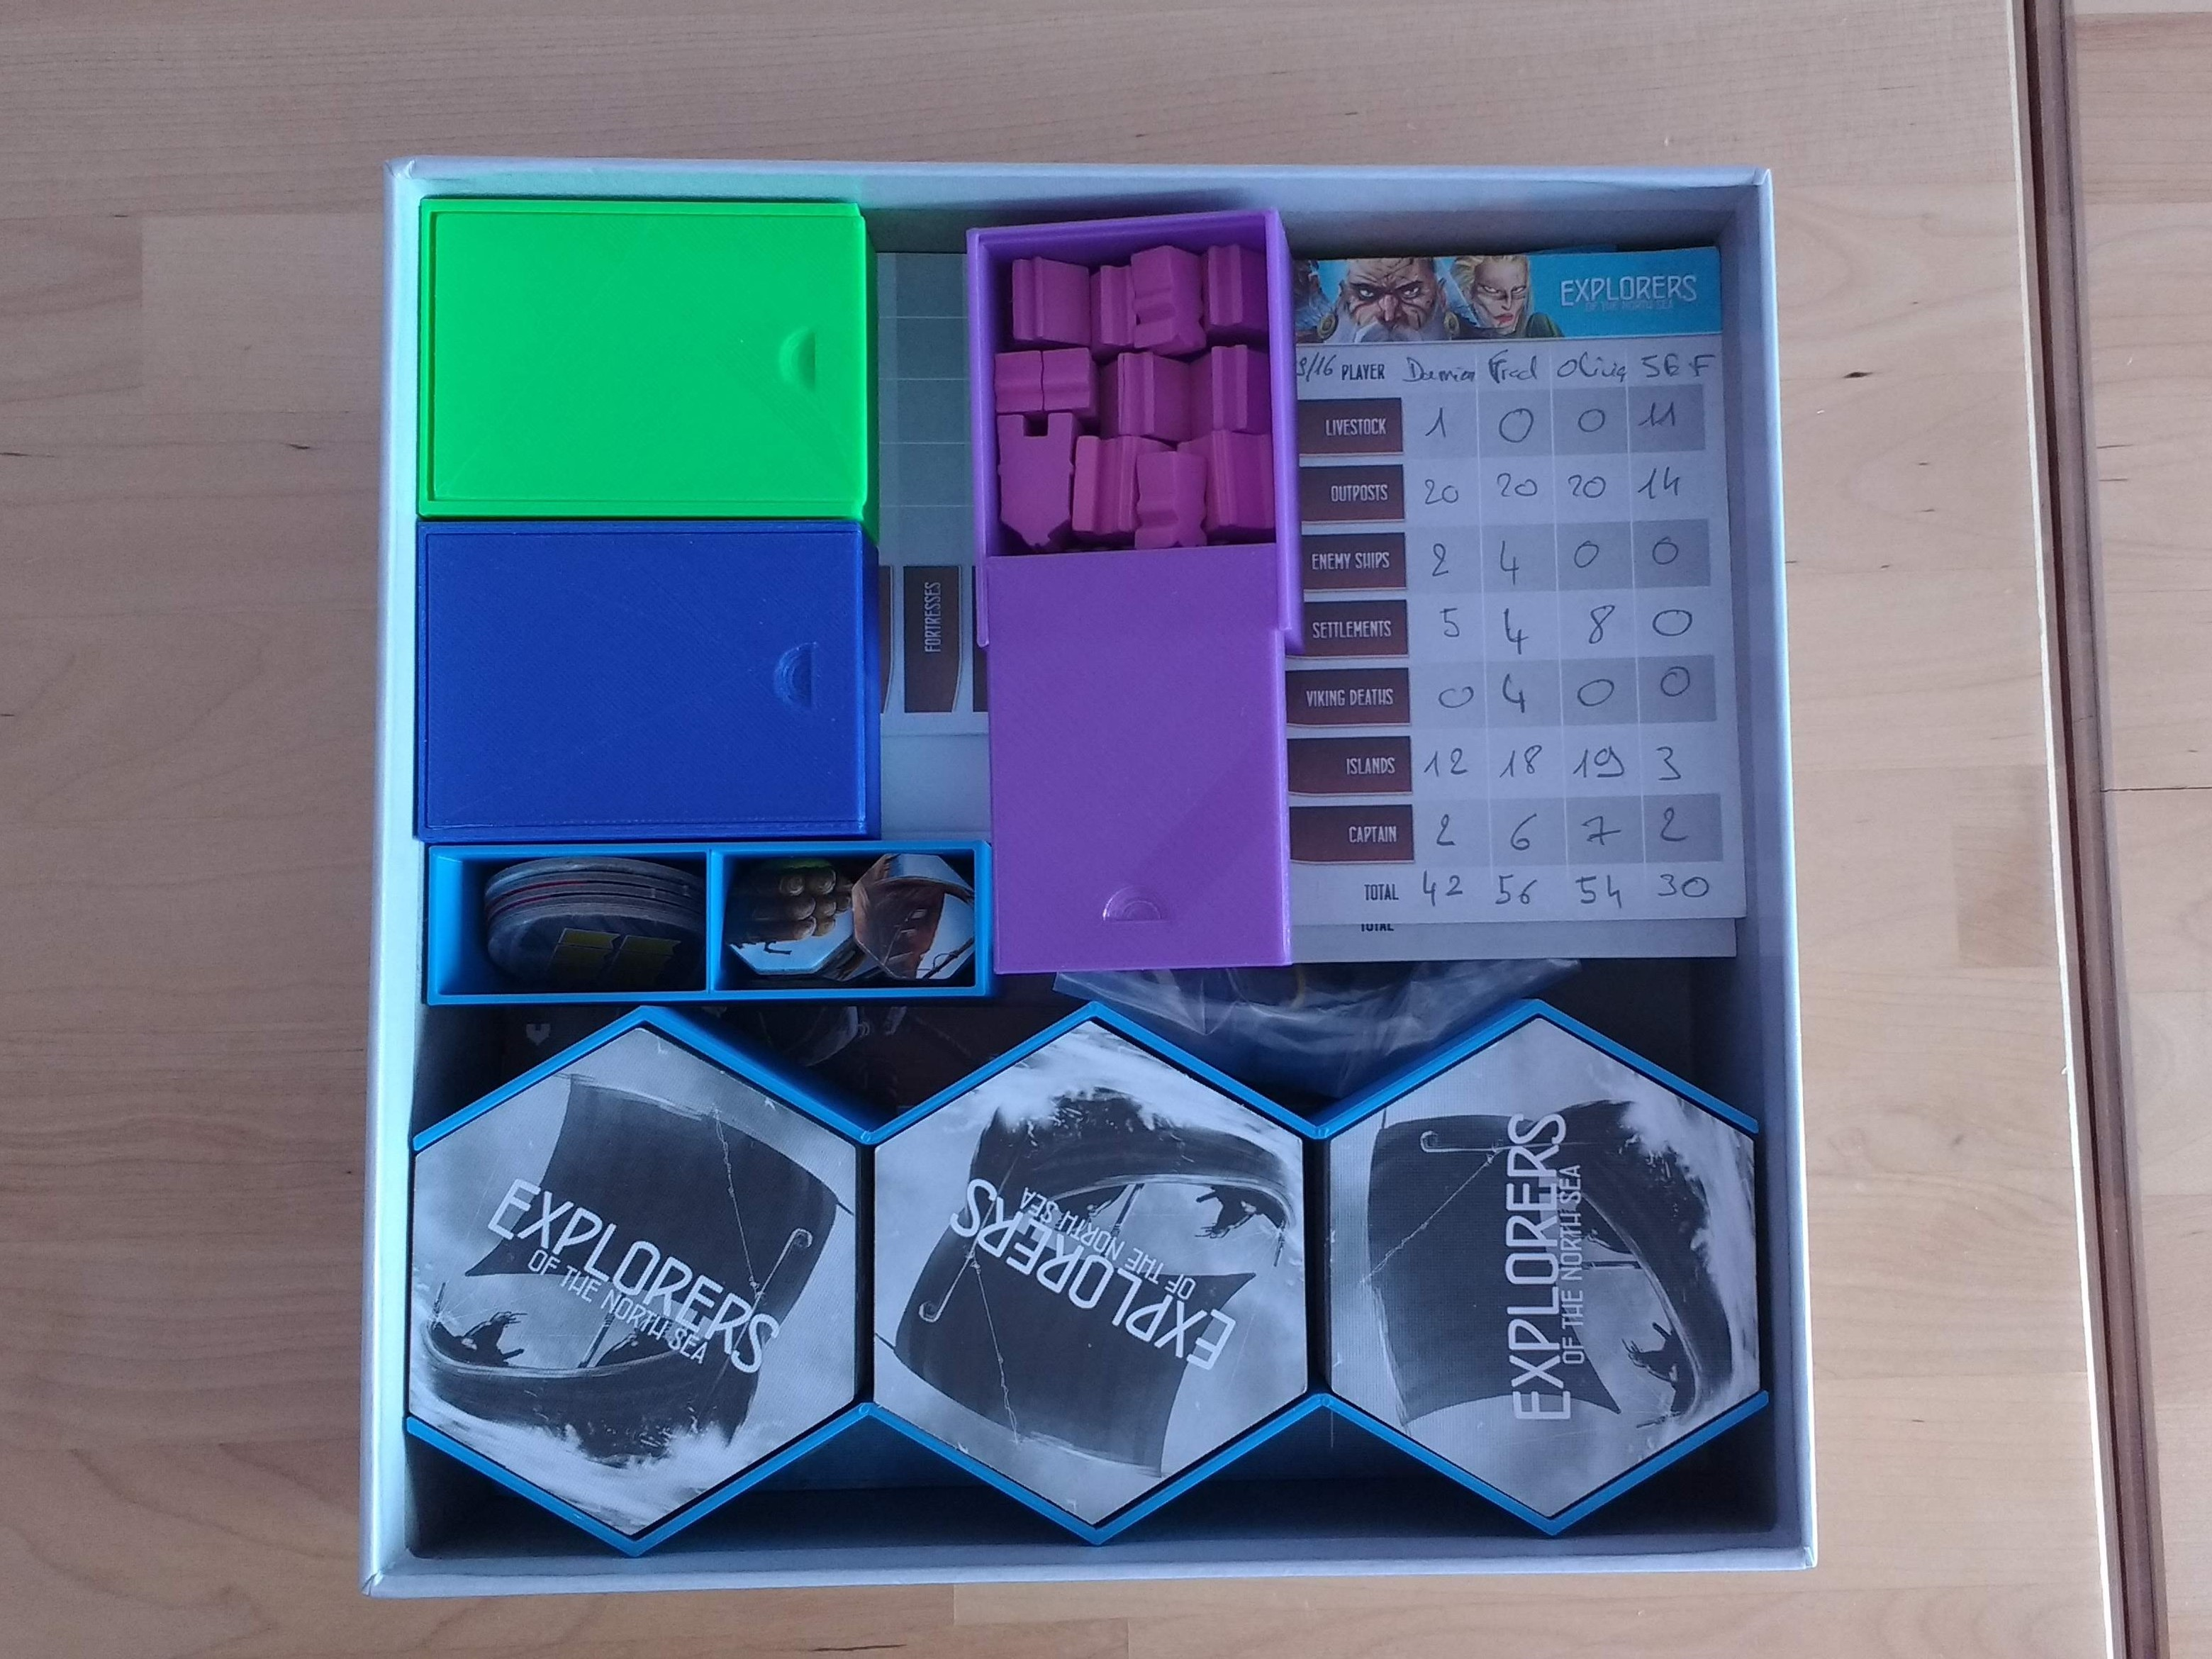 ALL SG NEW//SHIP$0 HARD CITY Board Game KICKSTARTER EXCLUSIVES 2 EXPANSIONS